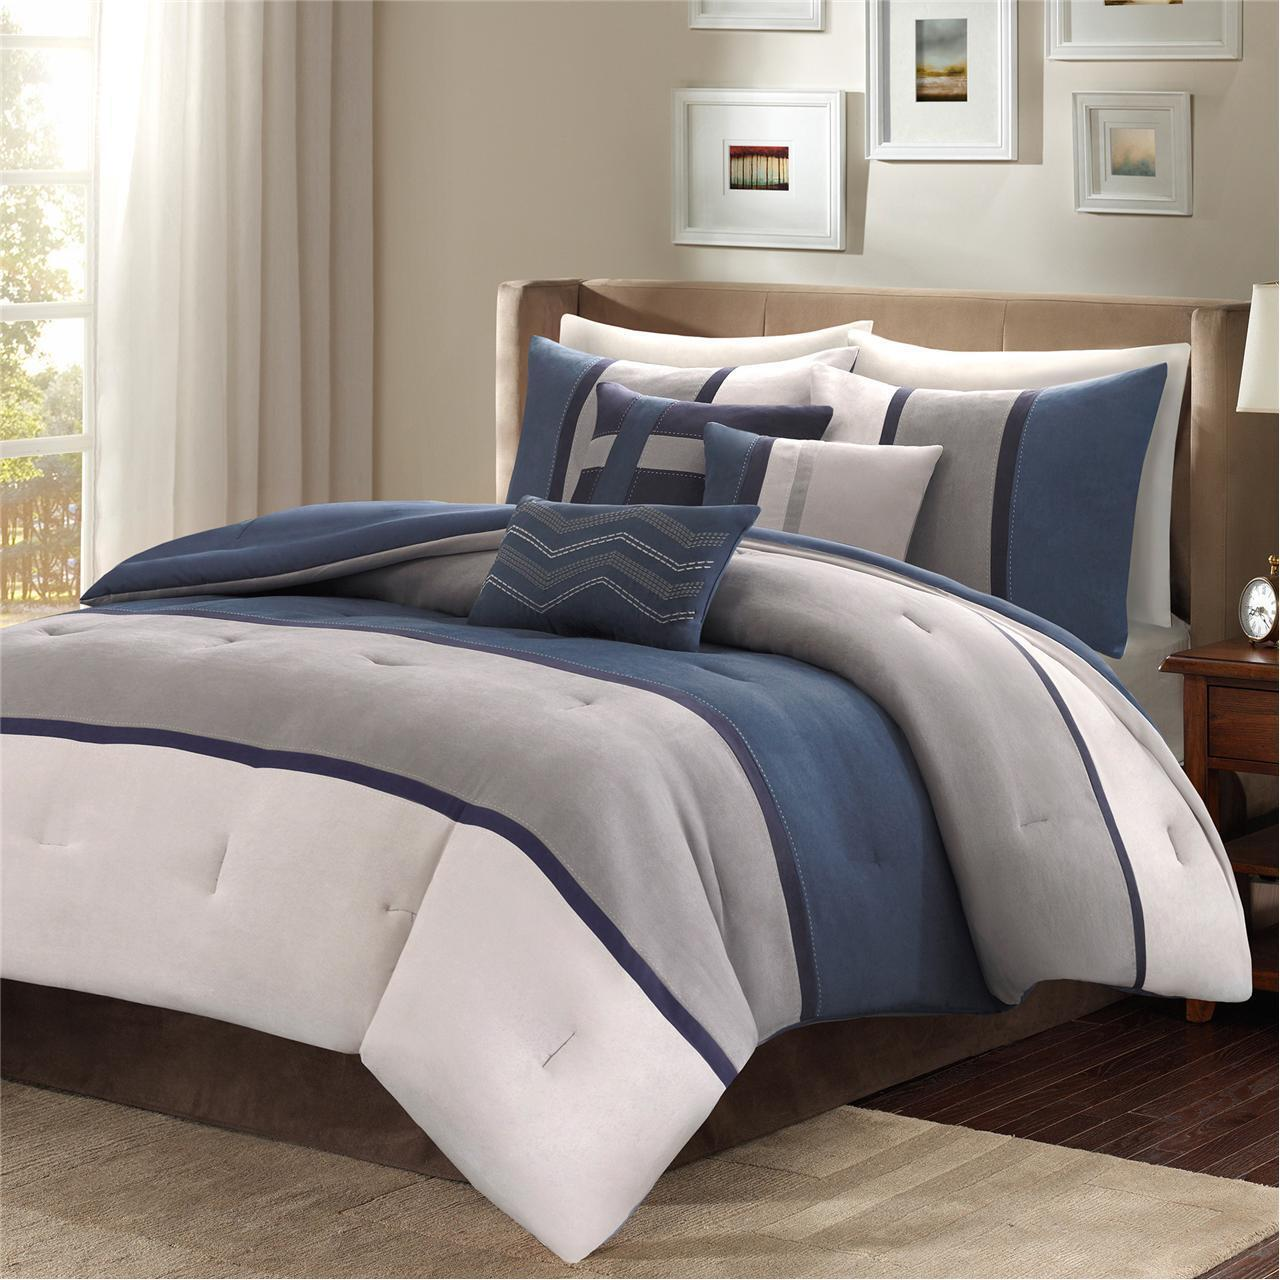 BEAUTIFUL MODERN ULTRA SOFT Blau LIGHT grau CHEVRON STITCH STRIPE COMFORTER SET